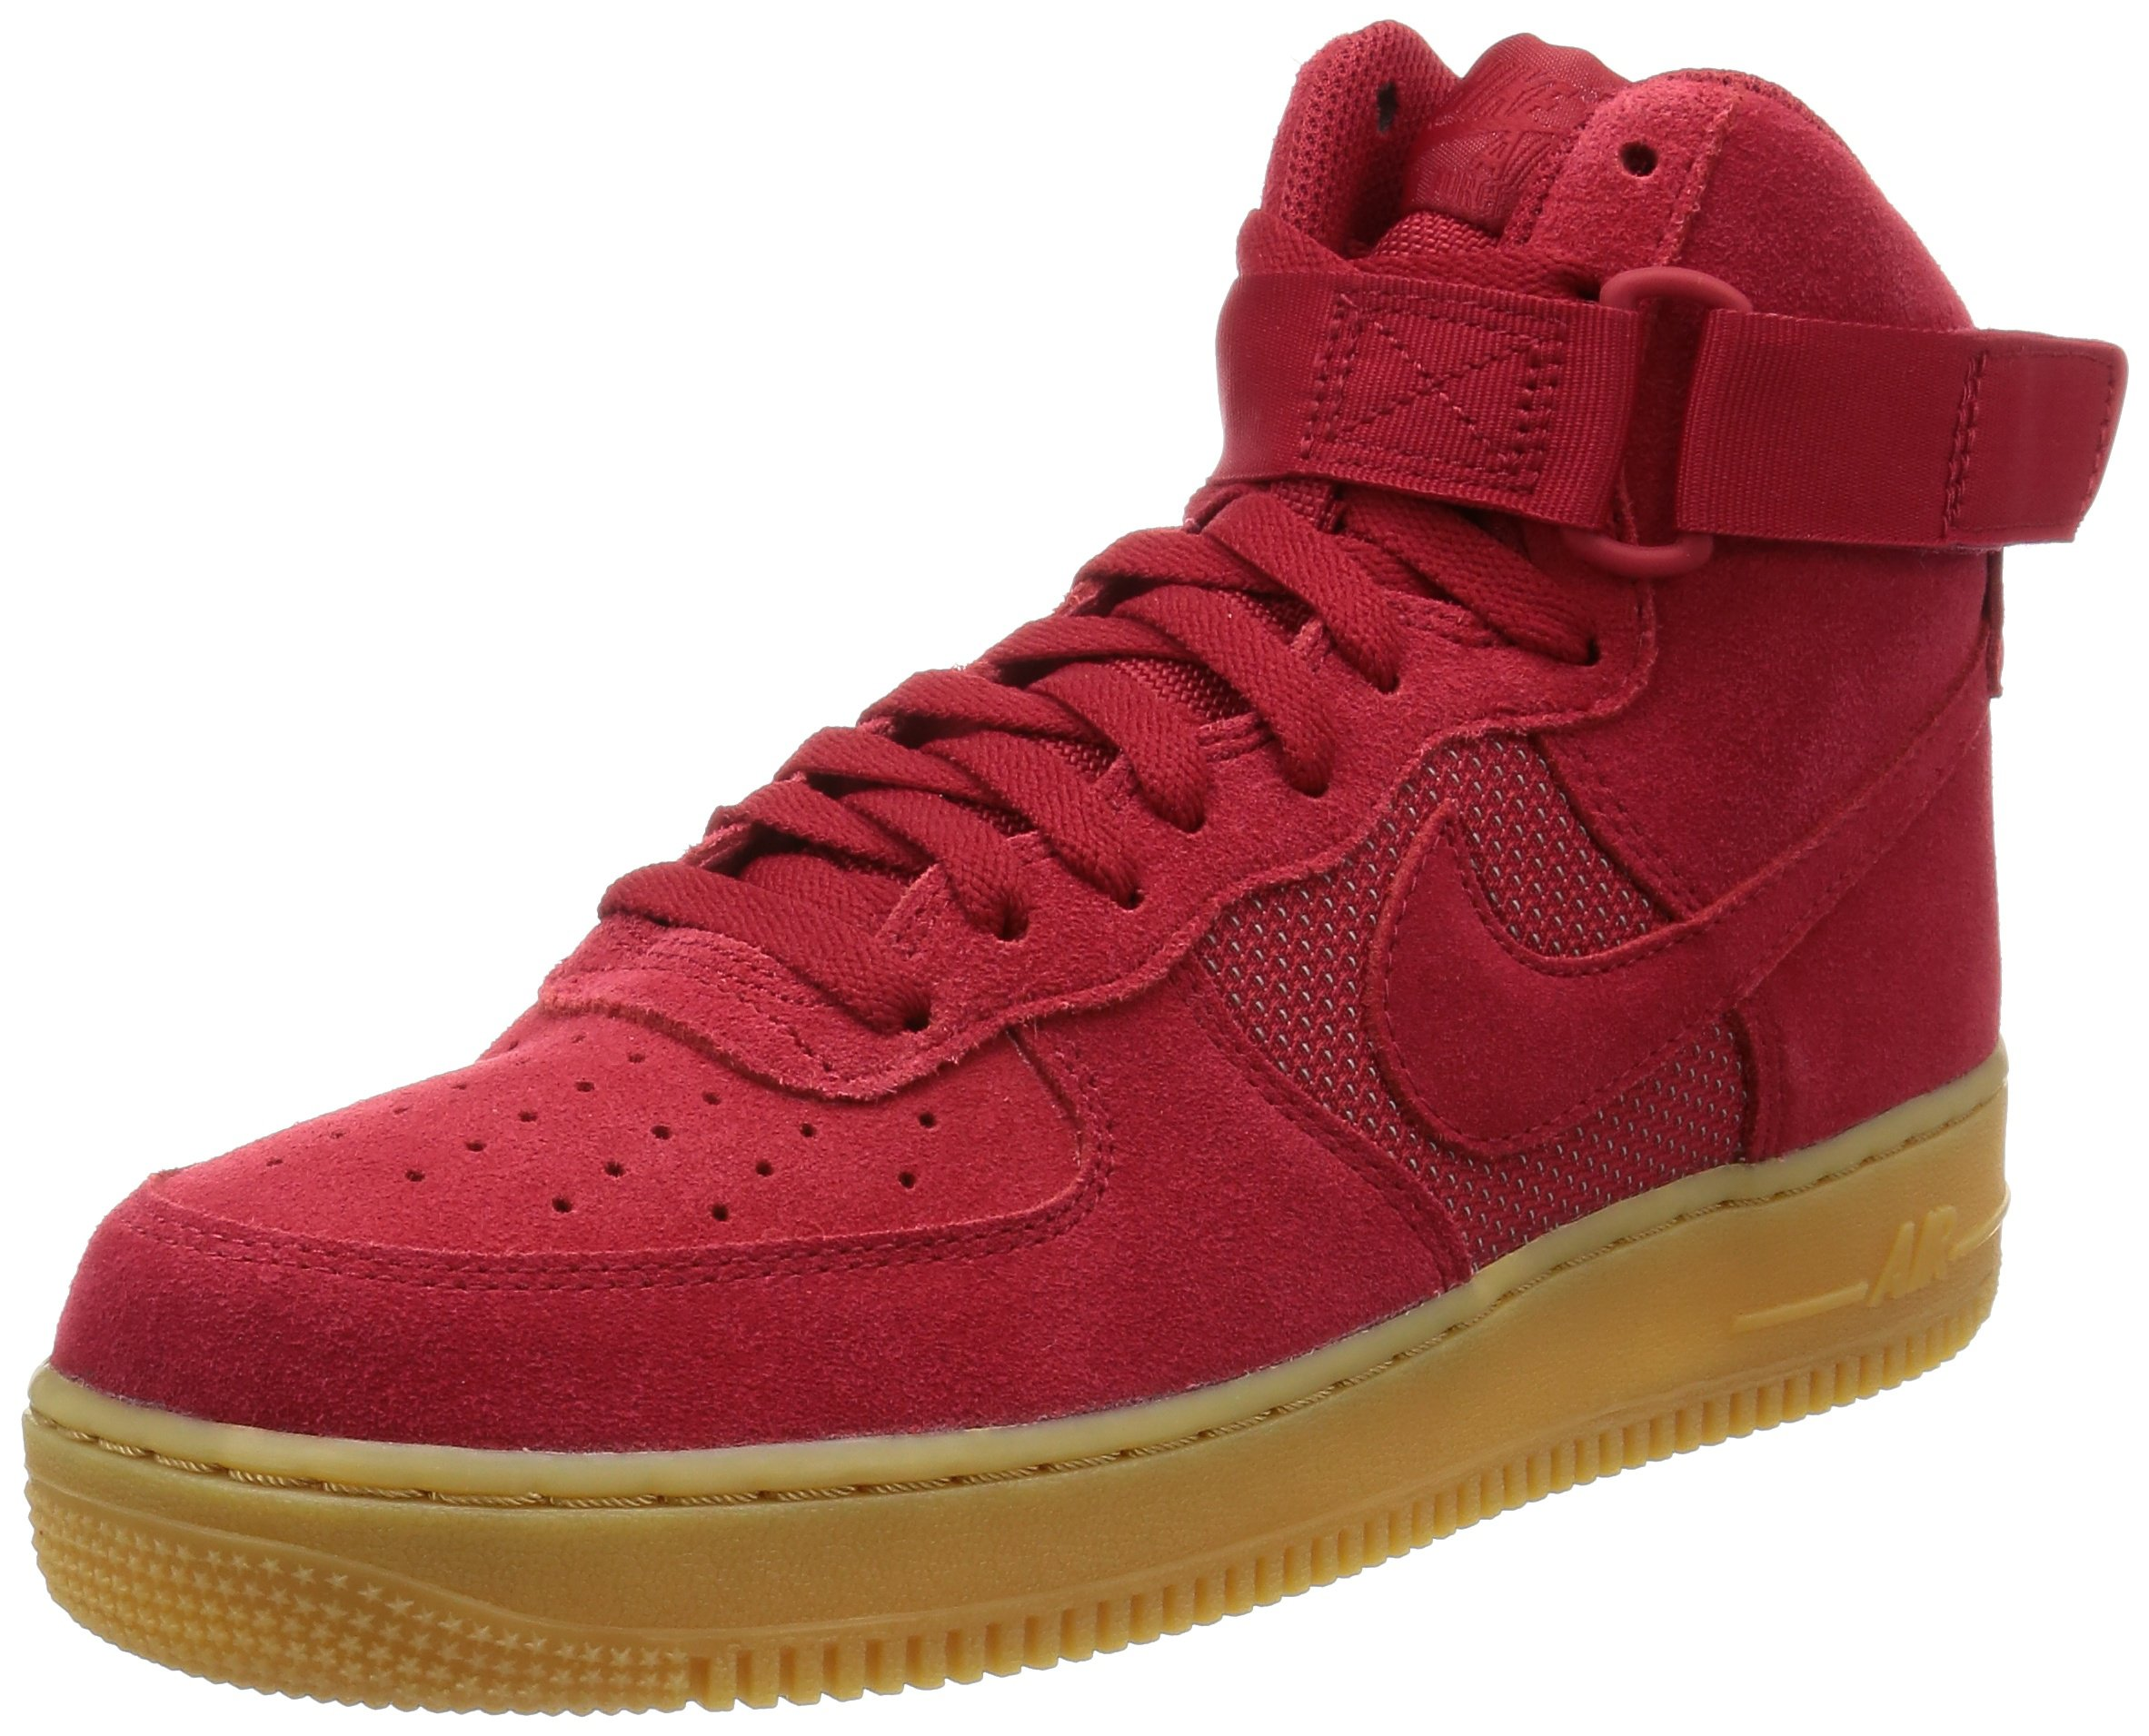 Air 07 Red High Nike Mens Sneakers 1 Lv8 9 5 Force ED29YeWHIb